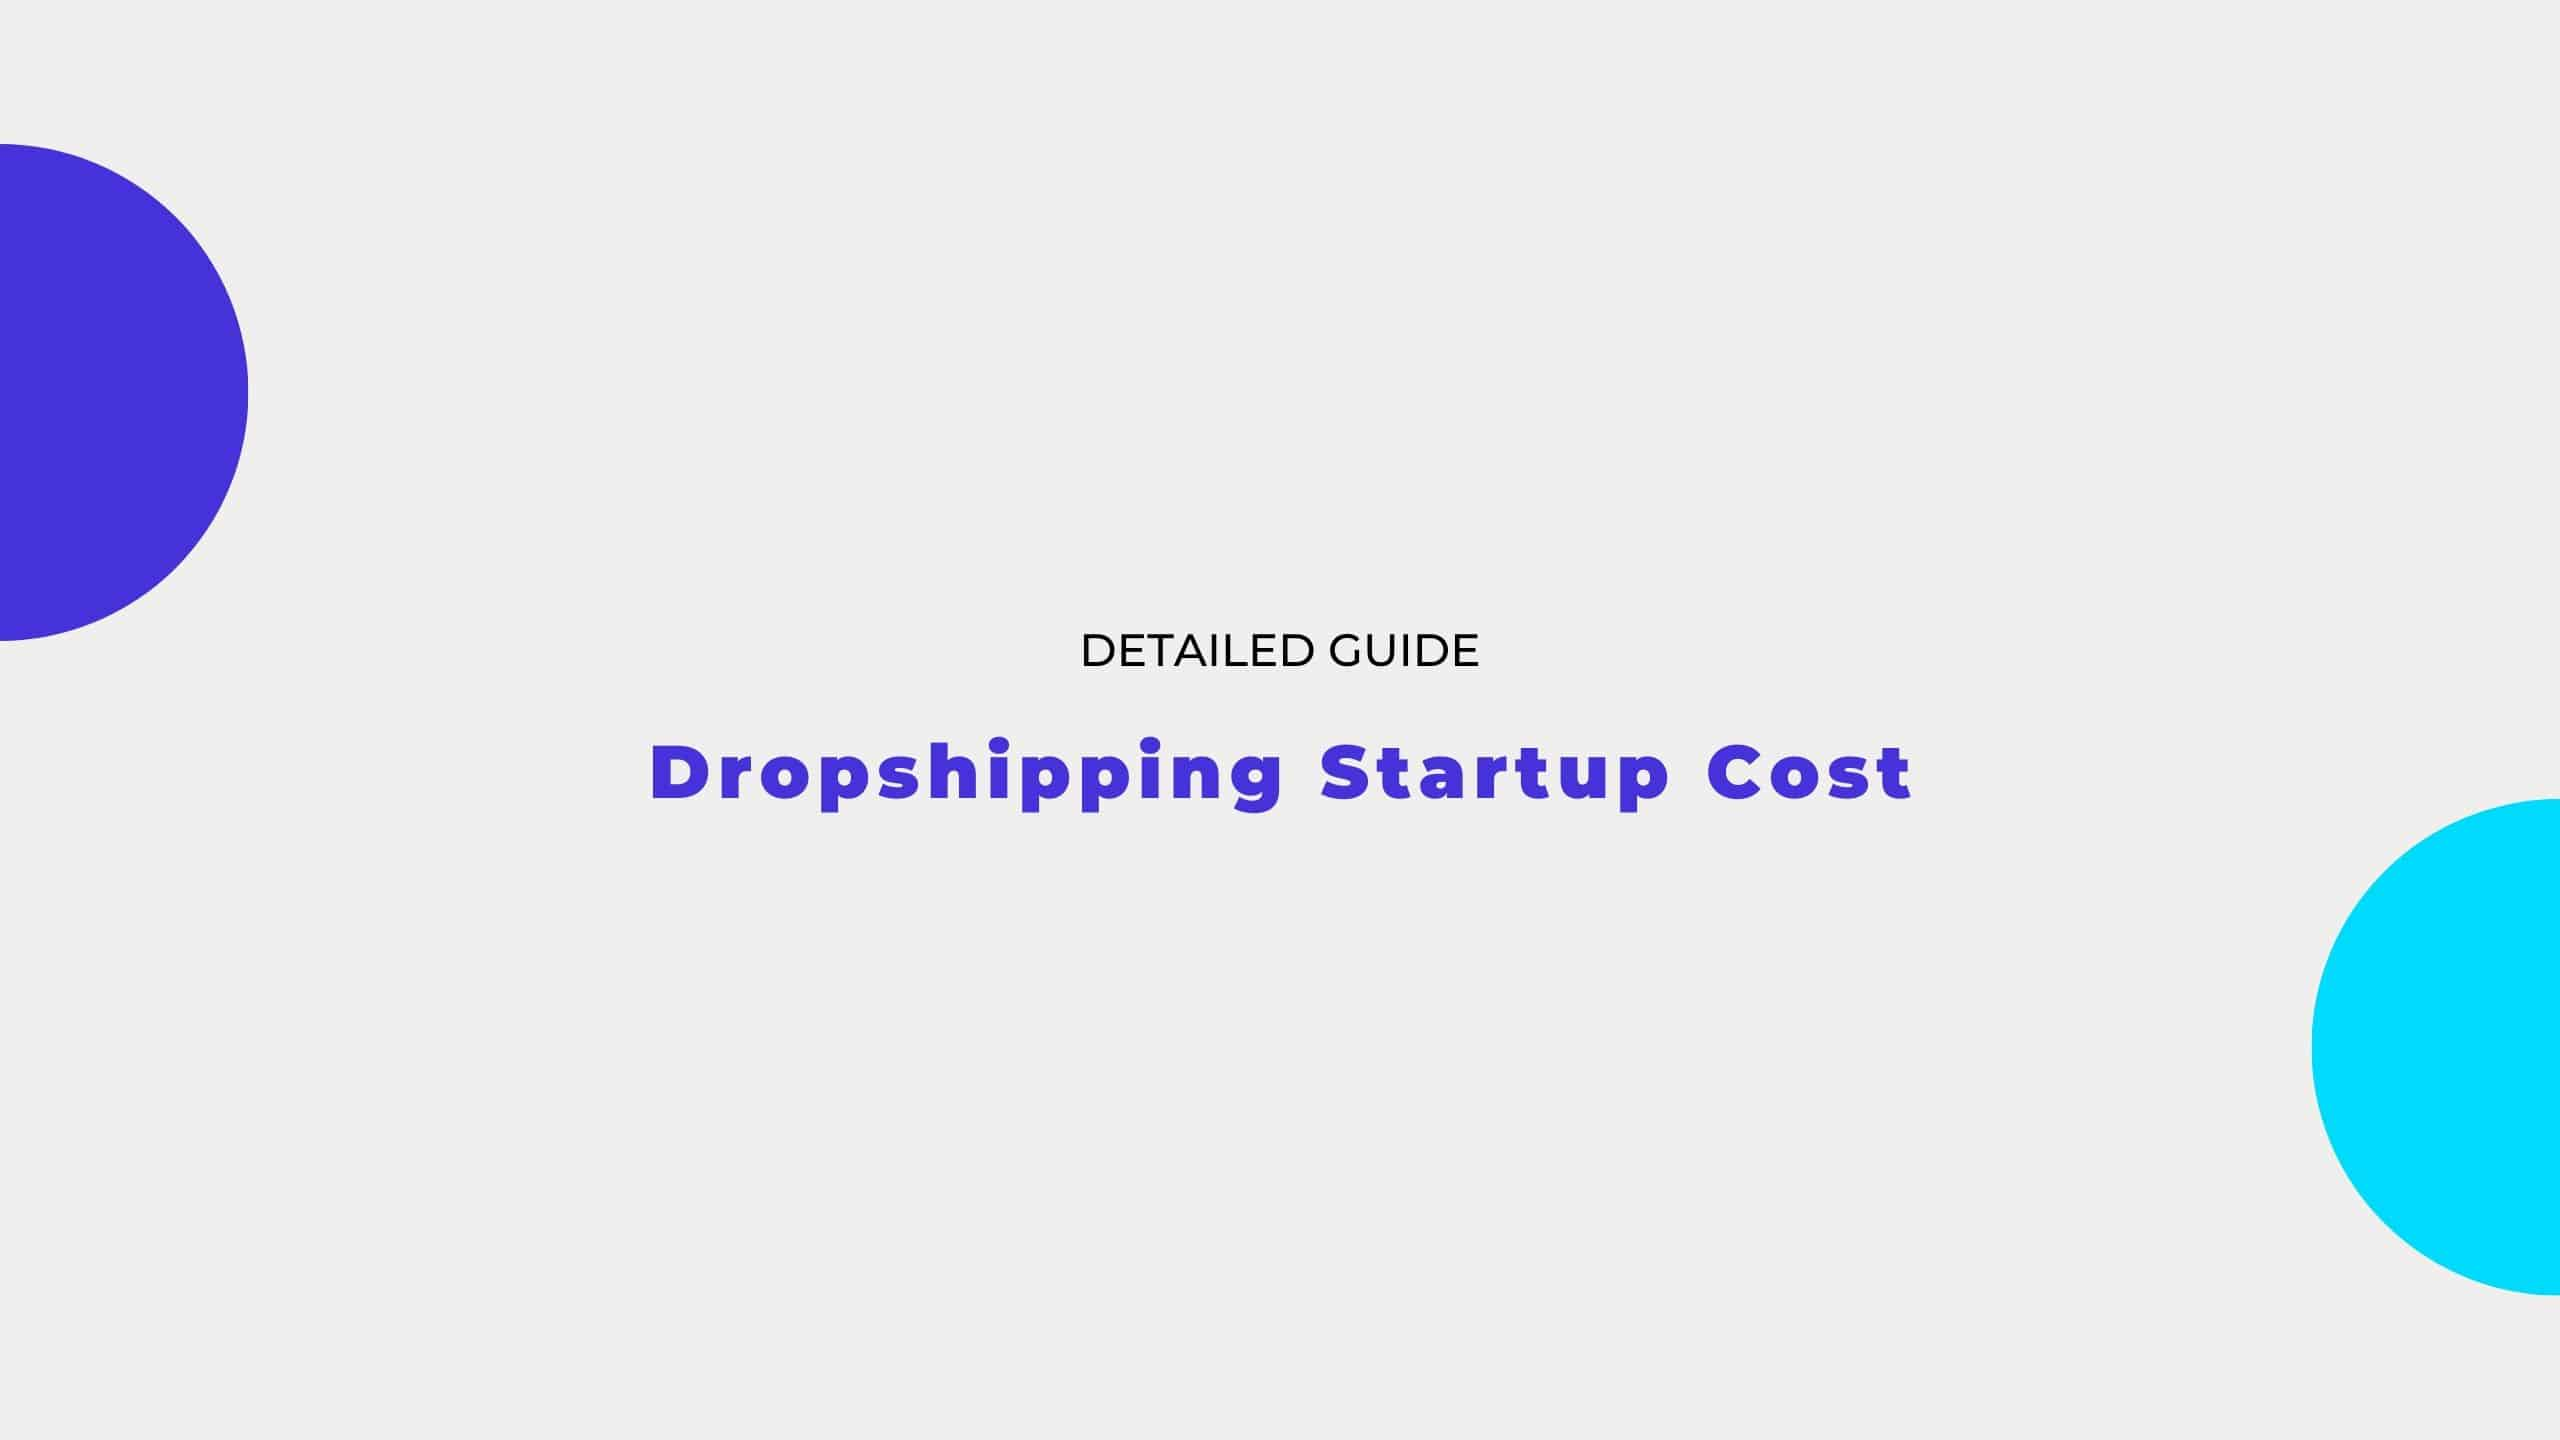 dropshipping startup cost